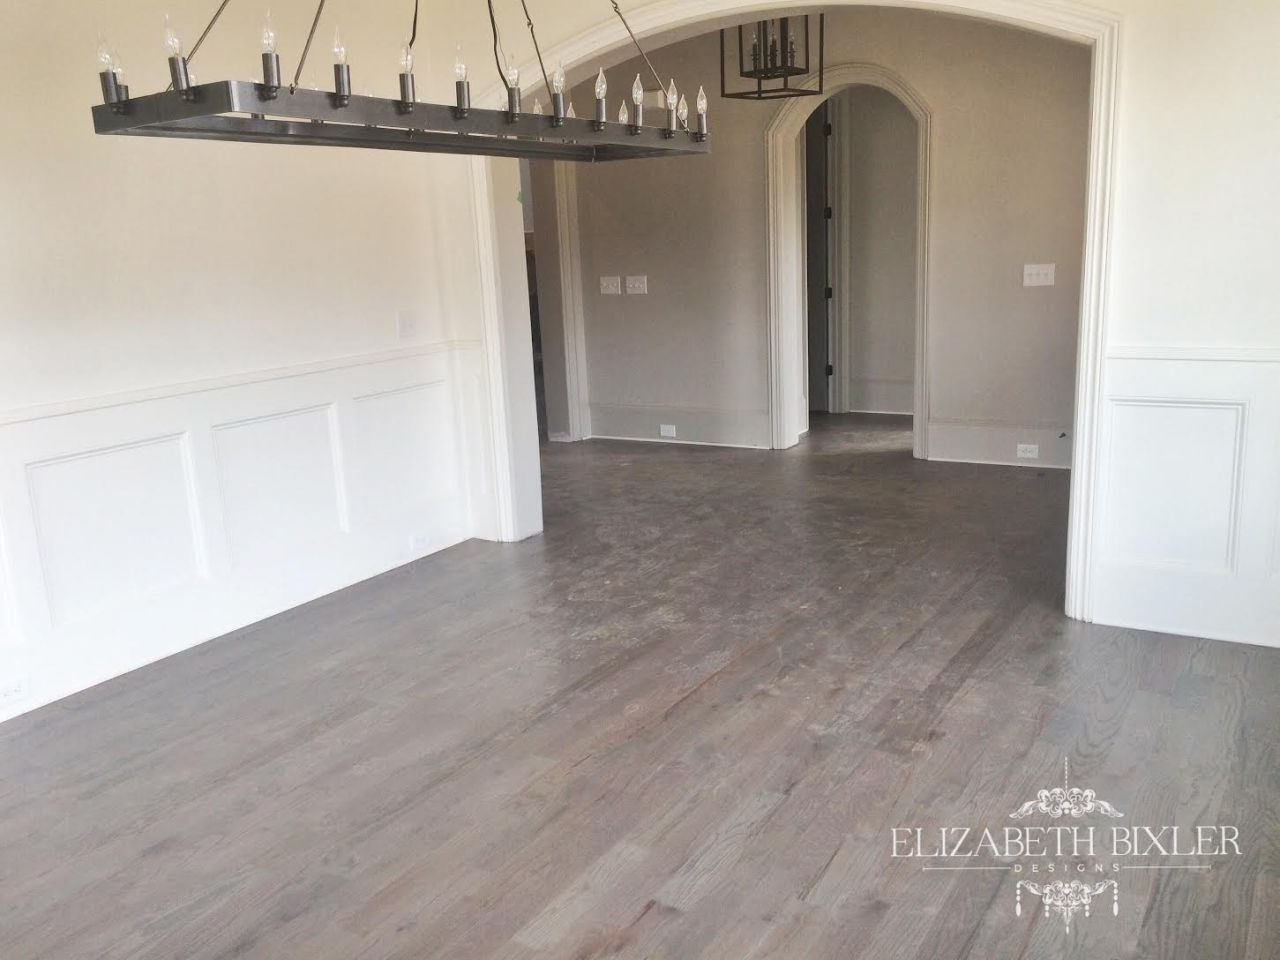 Minwax Charcoal Grey Minwax Stain For Red Oak Floors Minwax Restoration Hardware And